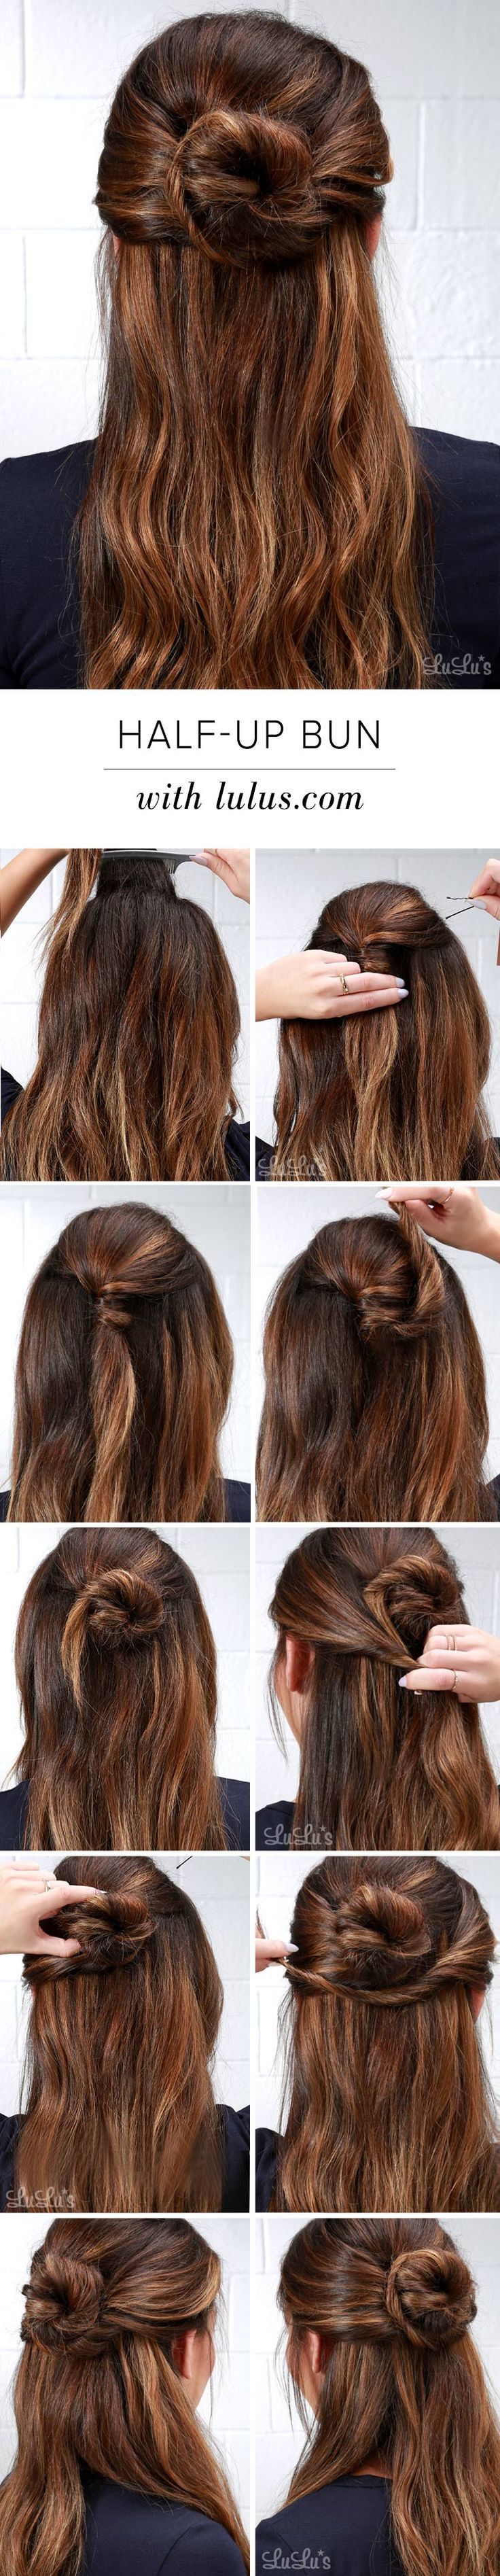 awesome LuLu*s How-To: Half-Up Bun Hair Tutorial by http://www.dana-haircuts.xyz/hair-tutorials/lulus-how-to-half-up-bun-hair-tutorial/